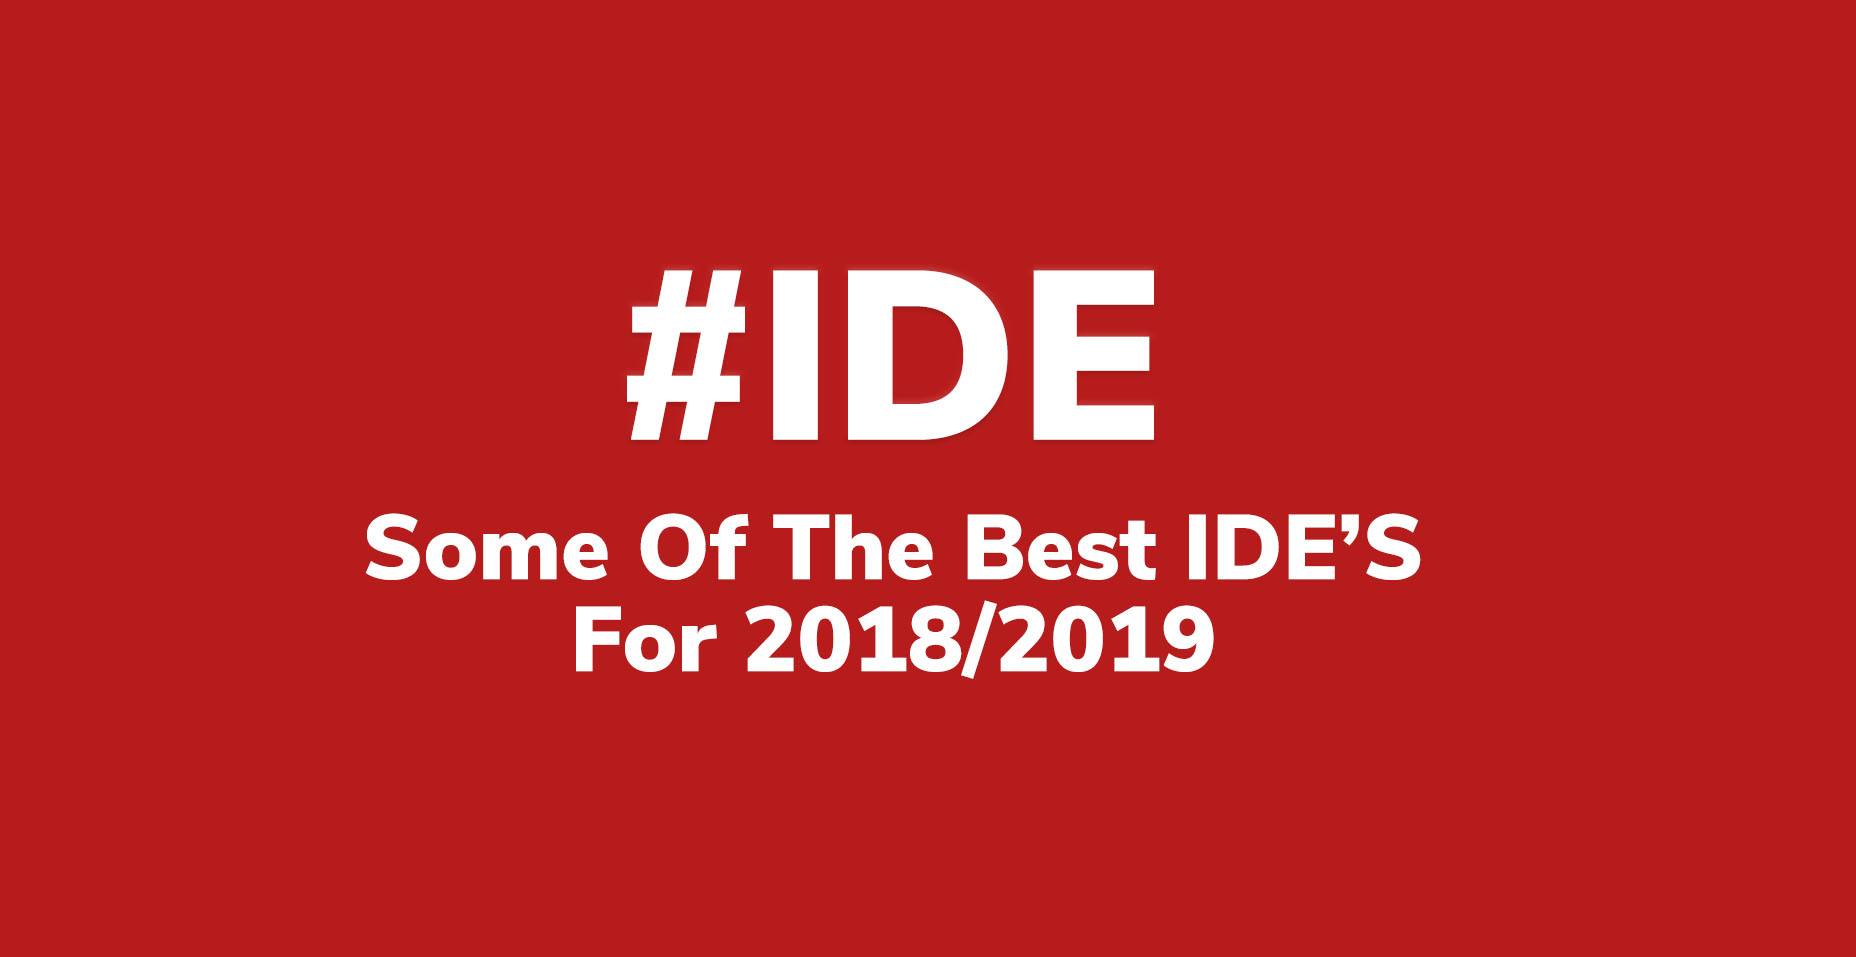 Some Of The Best IDE's To Use In 2018/2019 | Code Wall